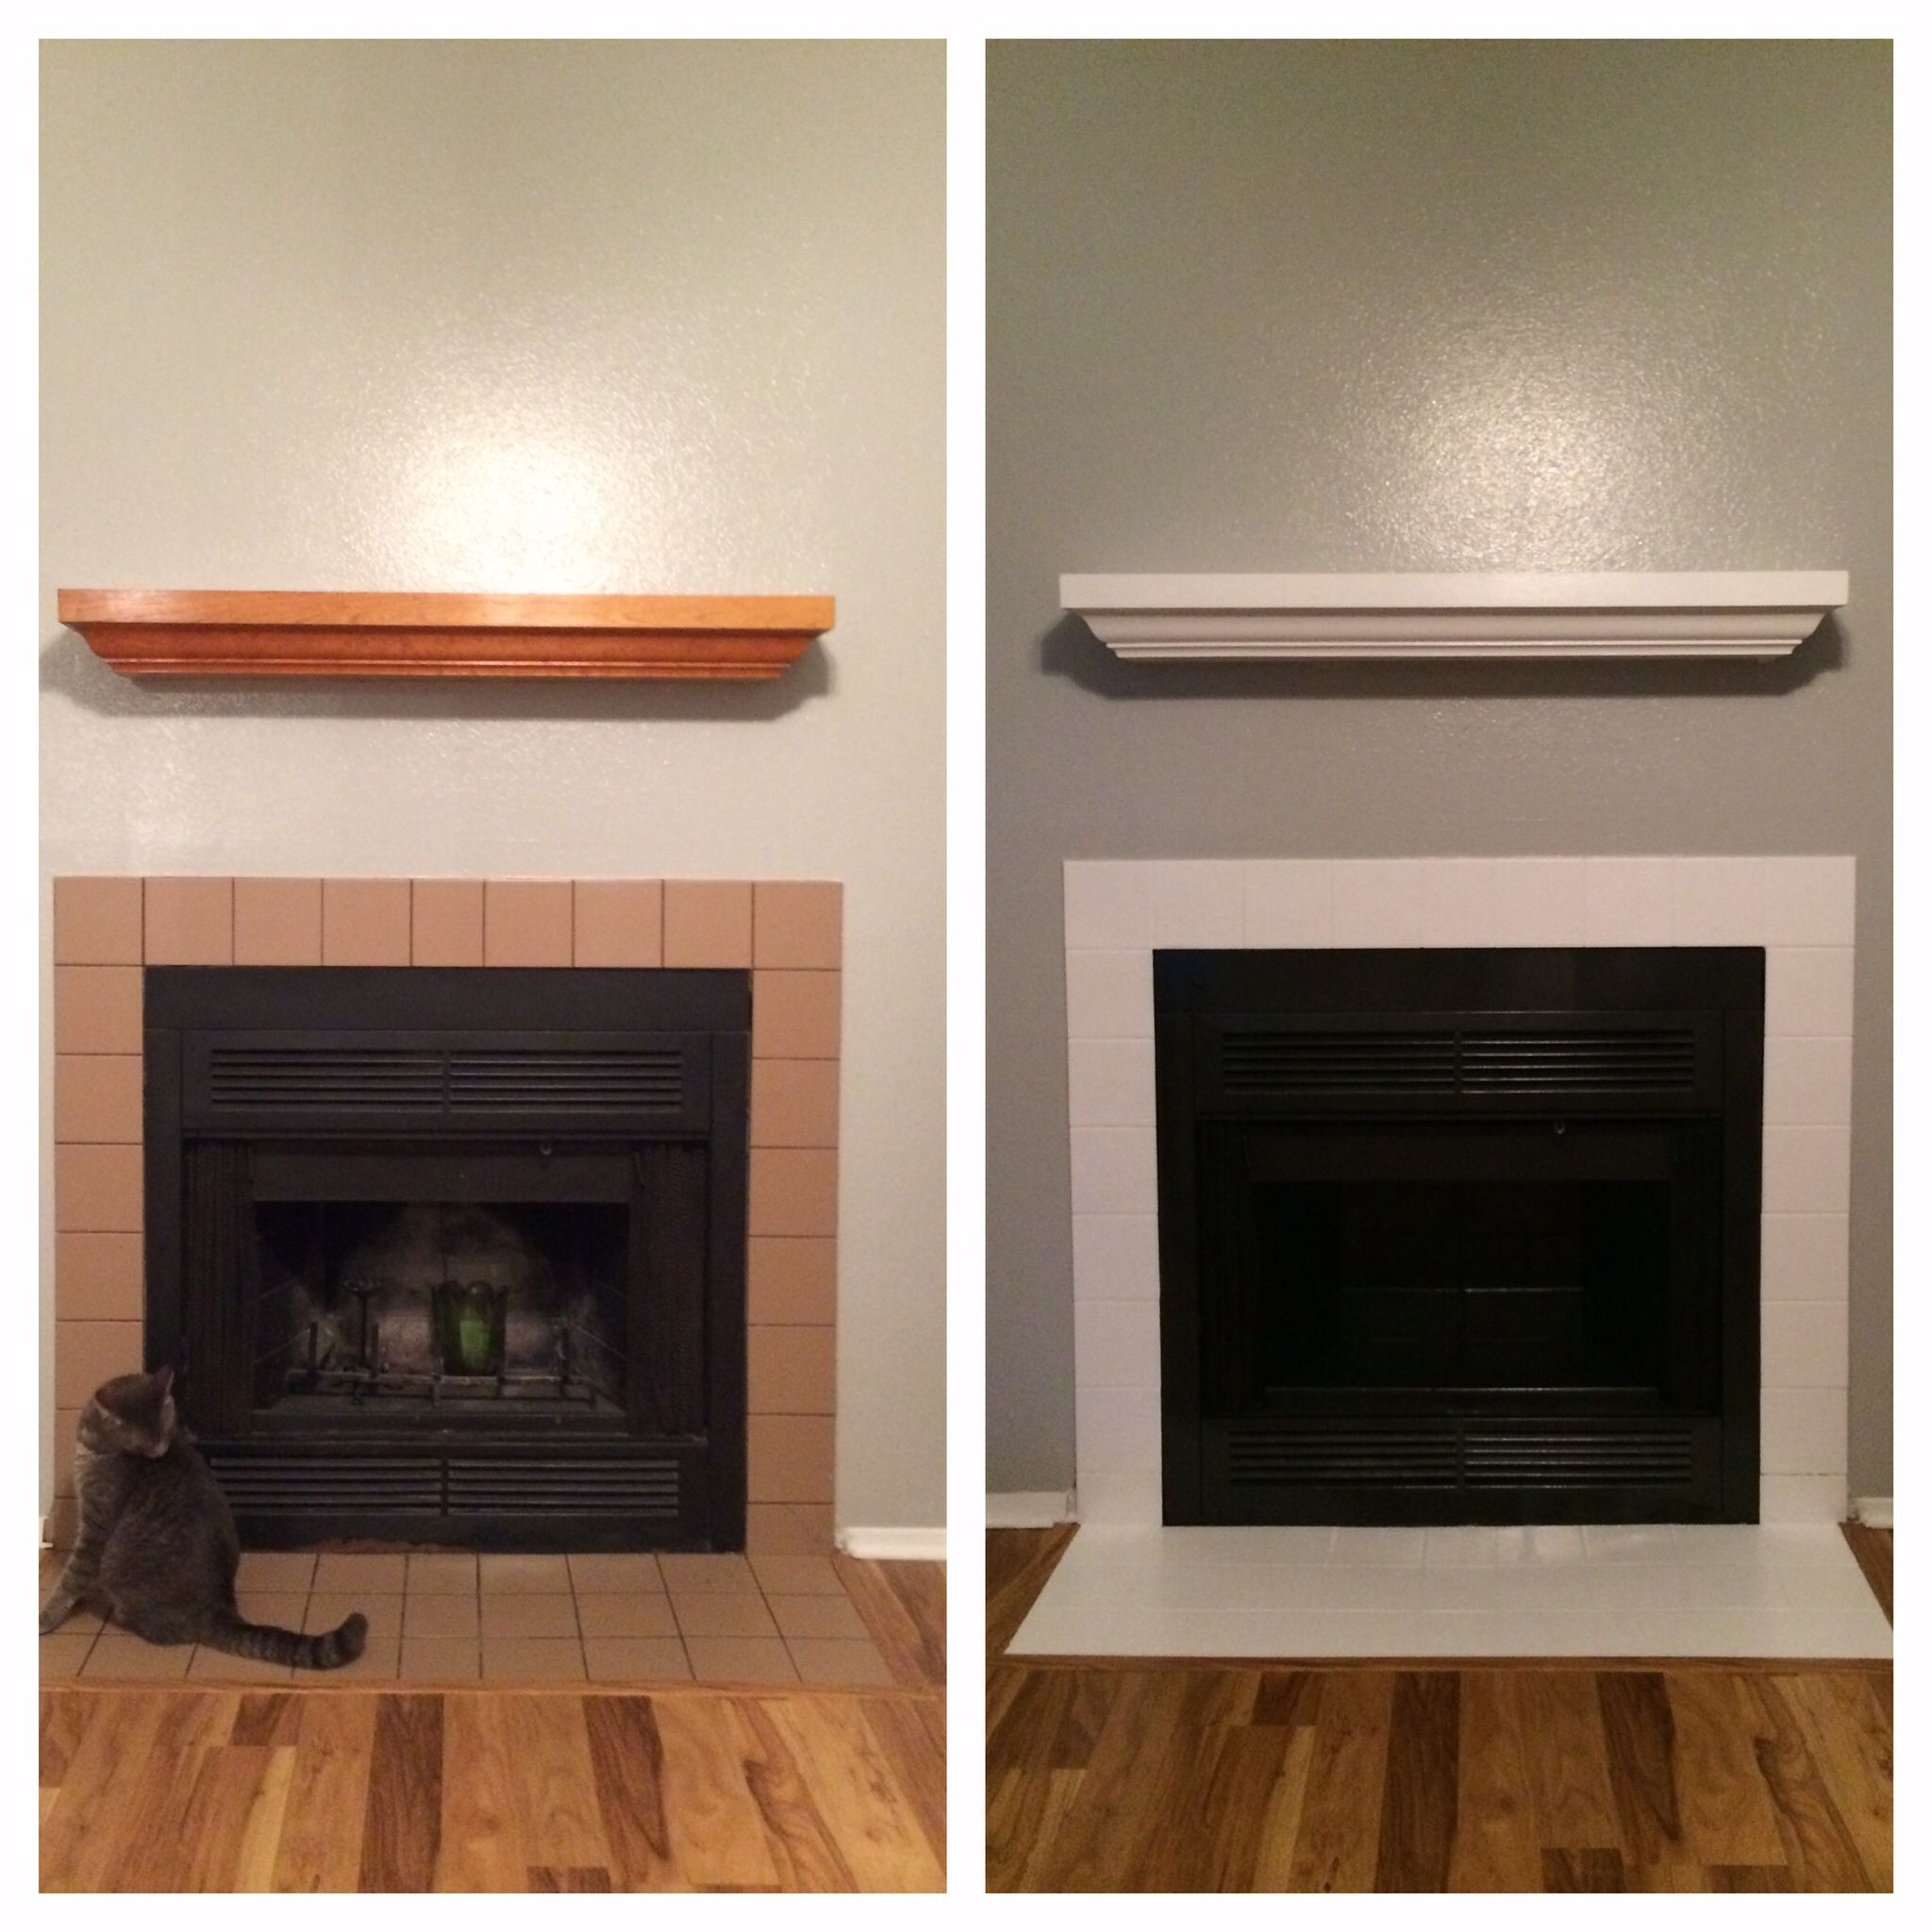 DIY tile fireplace update. Spray painted the fireplace ...